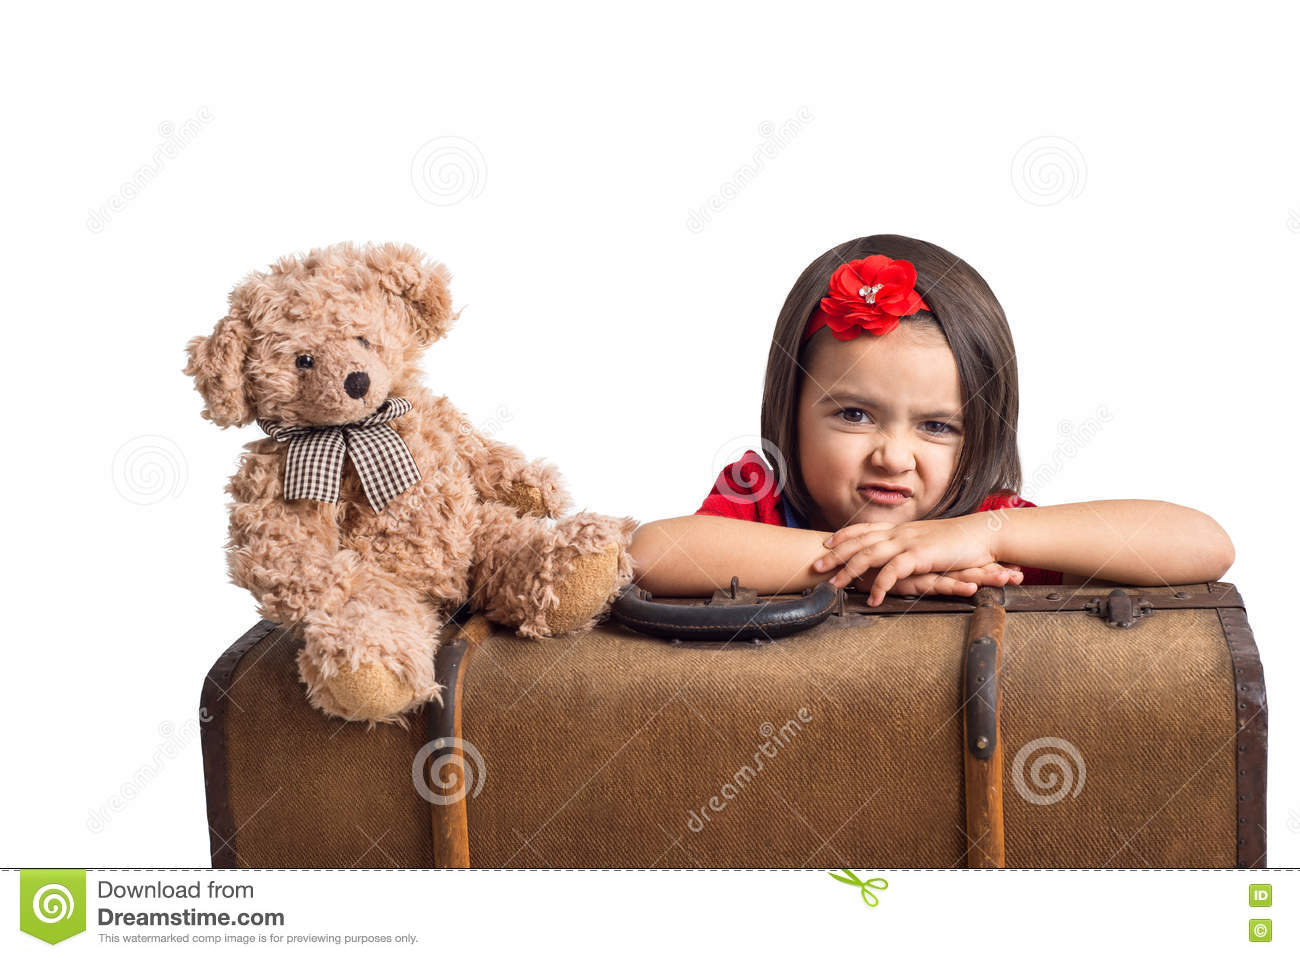 Capricious little Girl with suitcase and toy bear